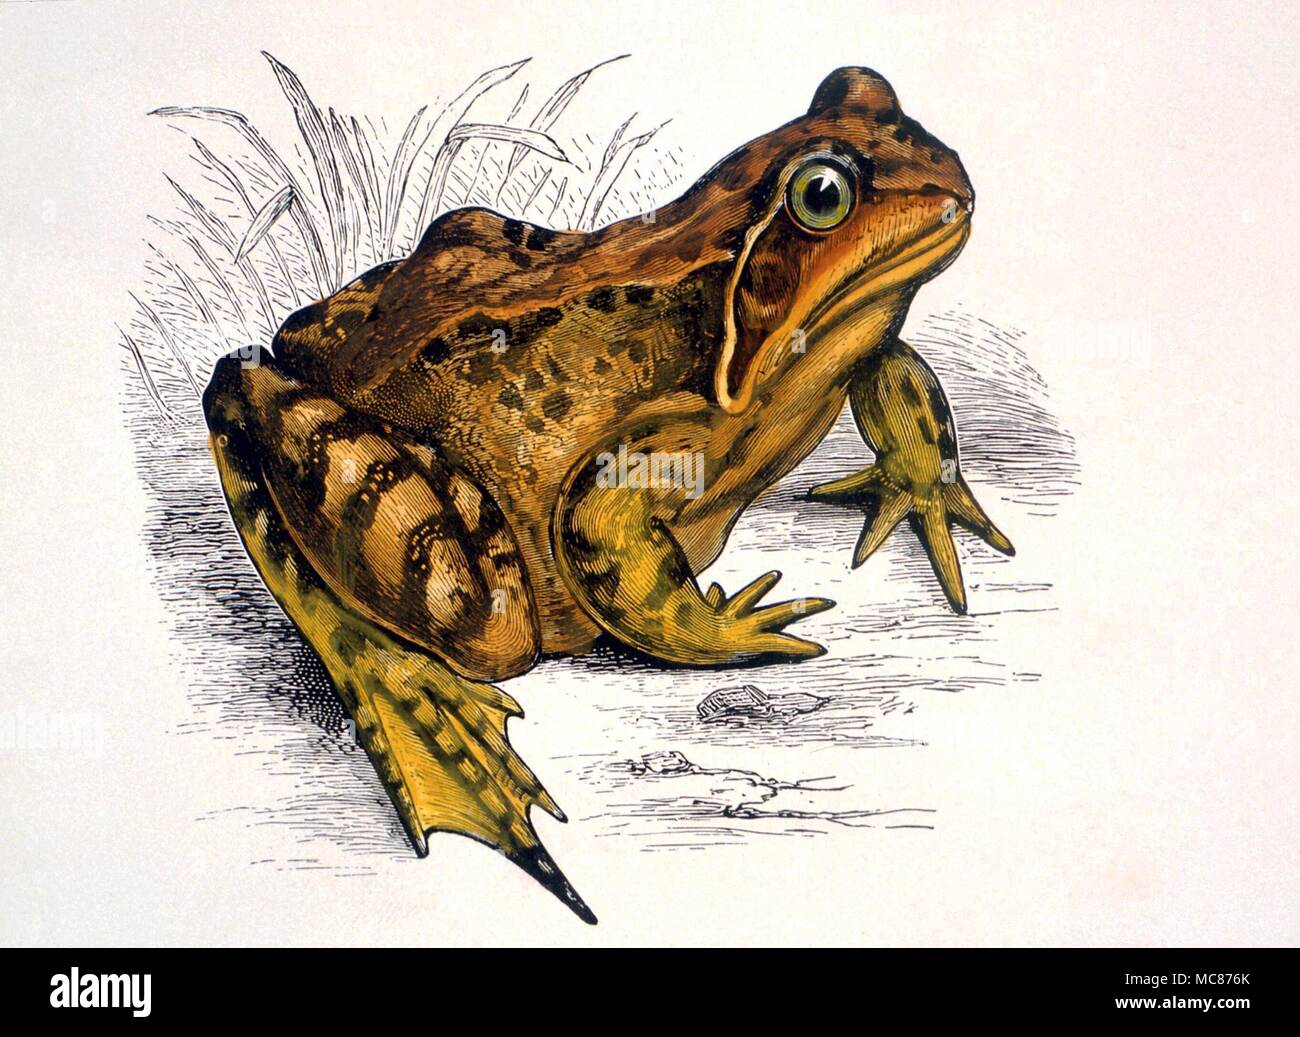 Dition stock photos dition stock images page 2 alamy strange phenomena the frog used in f t bucklands early study of how frogs and toads might biocorpaavc Images